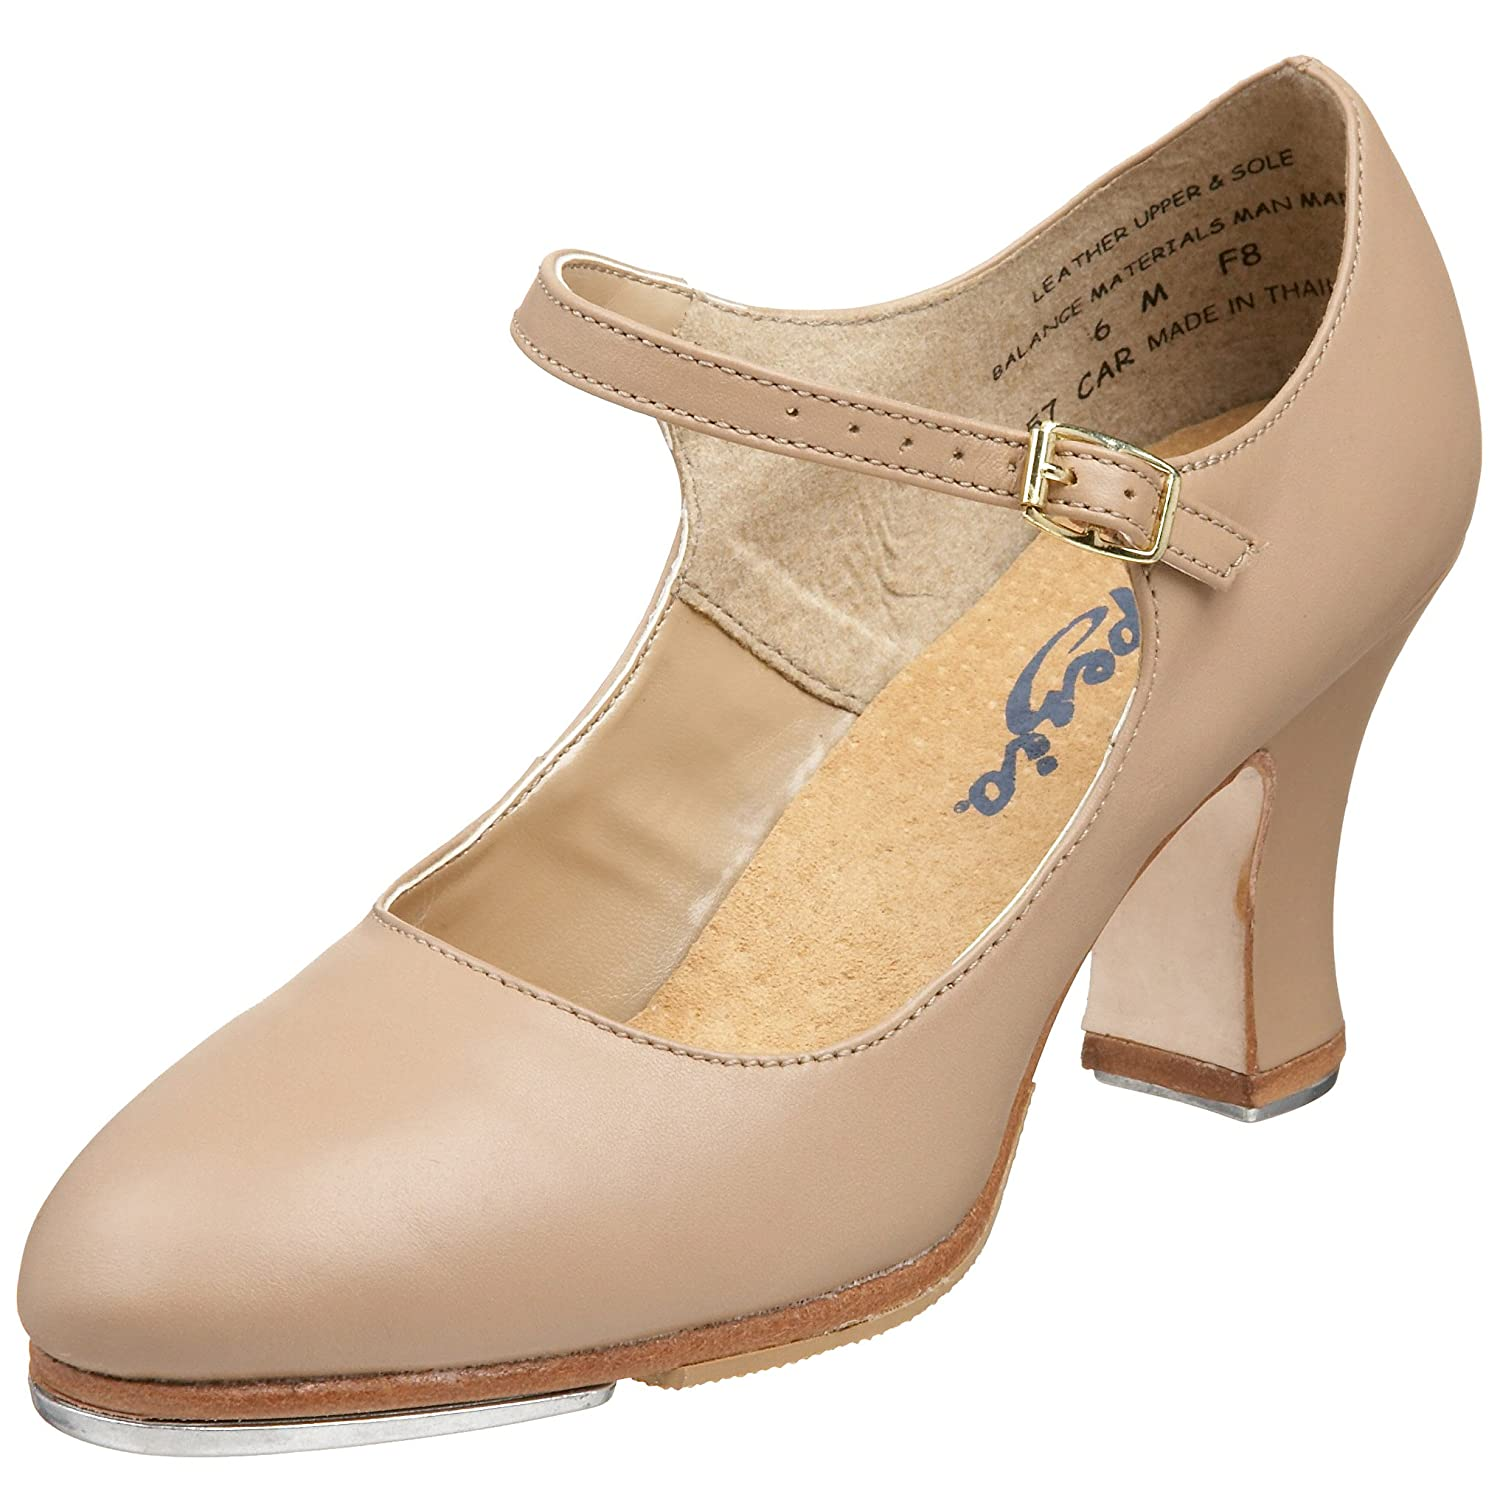 Vintage Shoes, Vintage Style Shoes Capezio Womens 657 Manhattan Xtreme Tap Shoe $82.95 AT vintagedancer.com